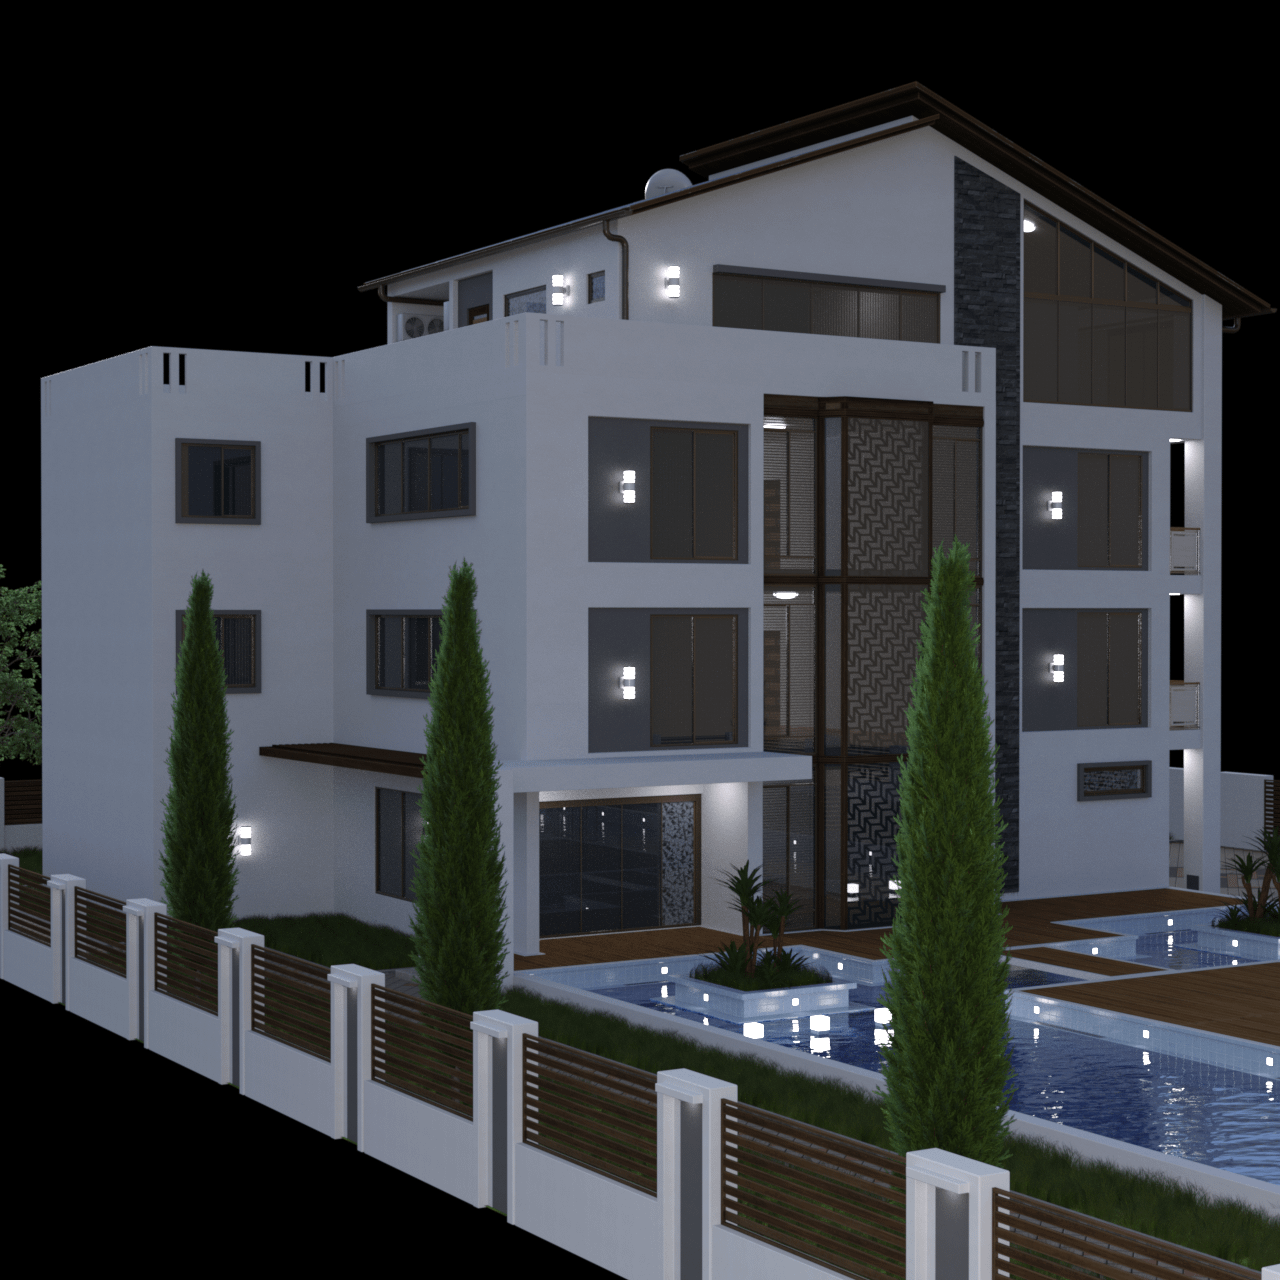 Modern house 3d model rendered by night